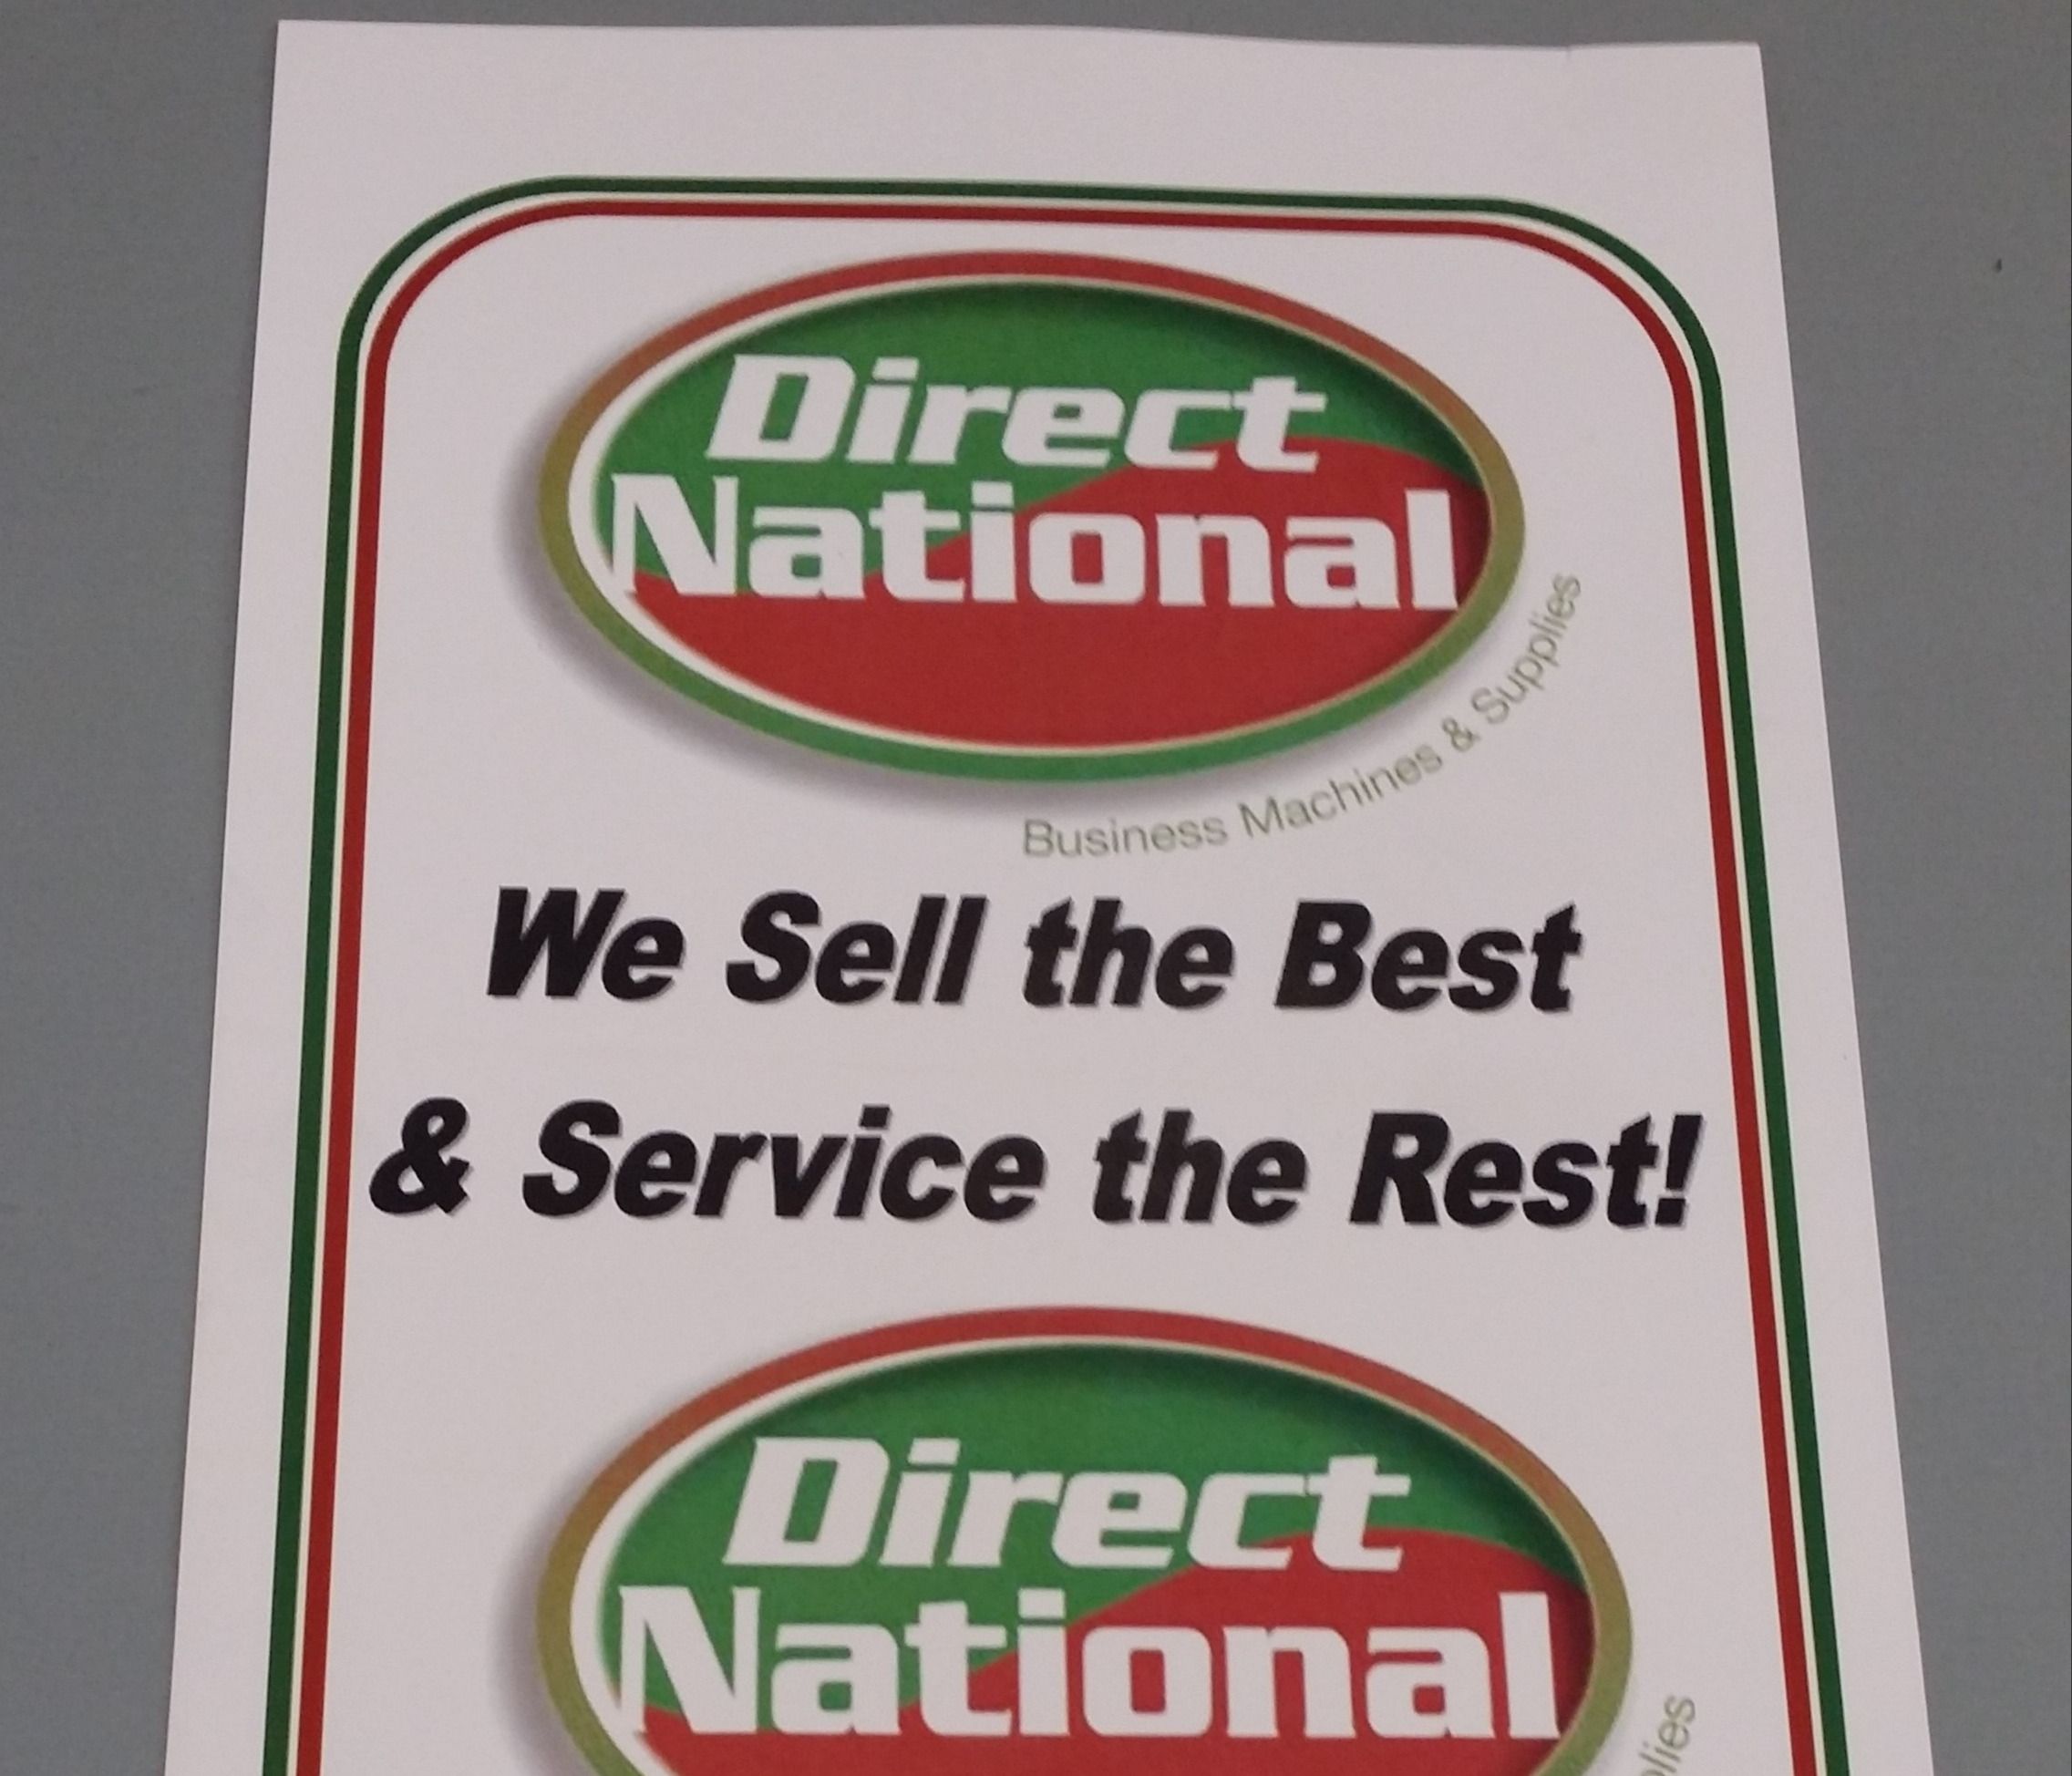 Direct National